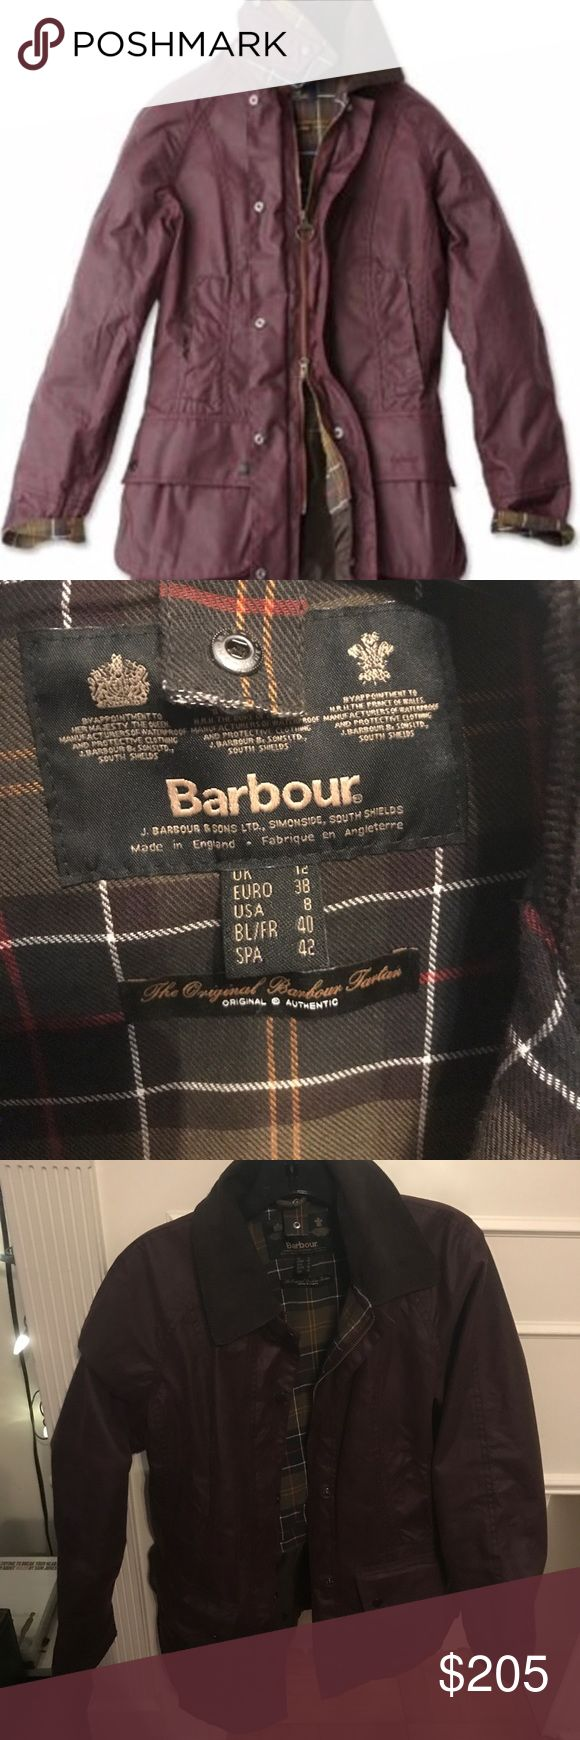 Amazing condition Barbour coat maroon size 8 Size 8, just rewaxed in the NYC store. Amazing condition. Worn a handful of times. Authentic. Barbour Jackets & Coats